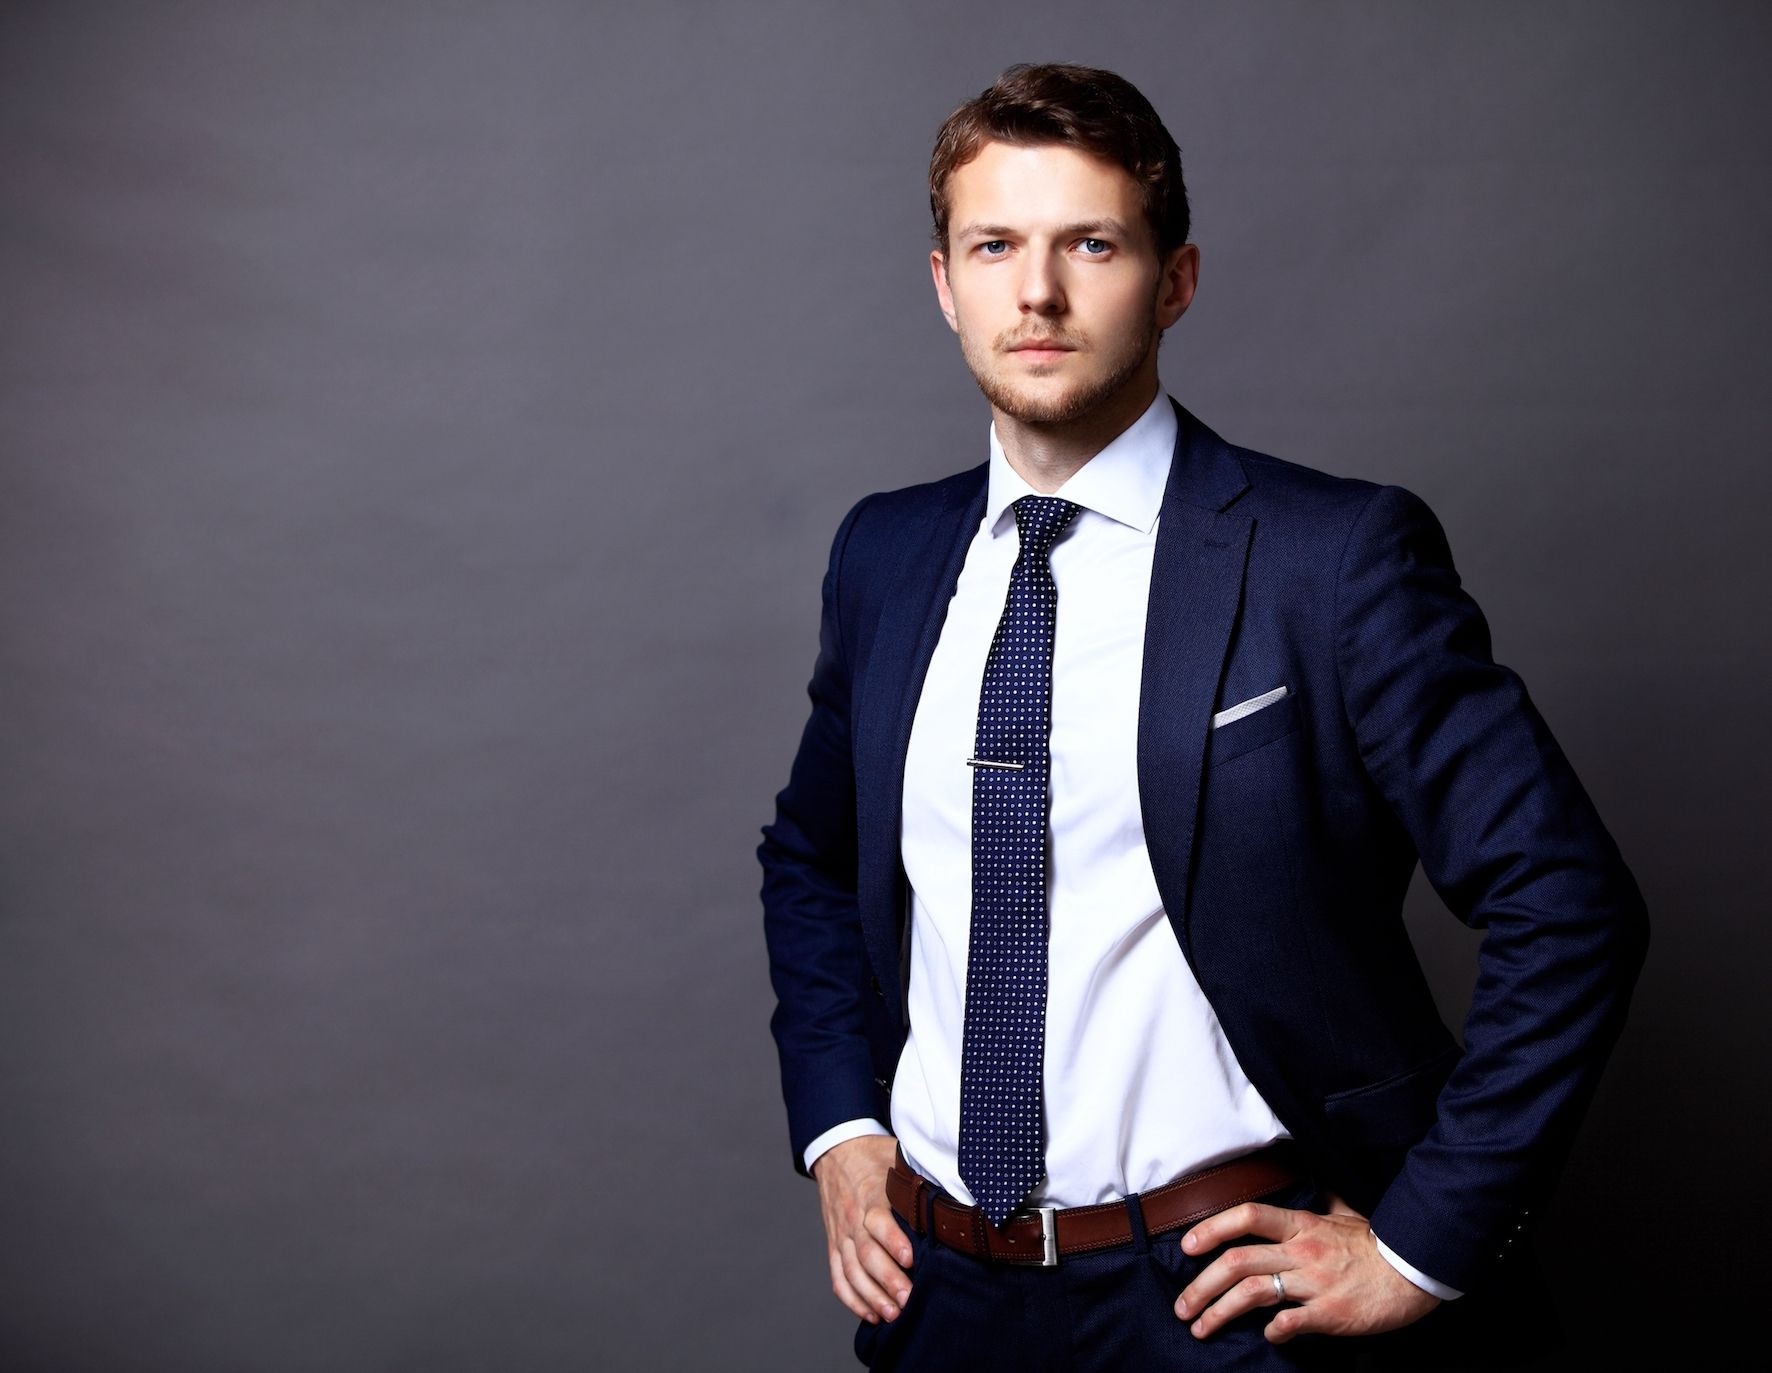 Cool young businessman standing on grey background